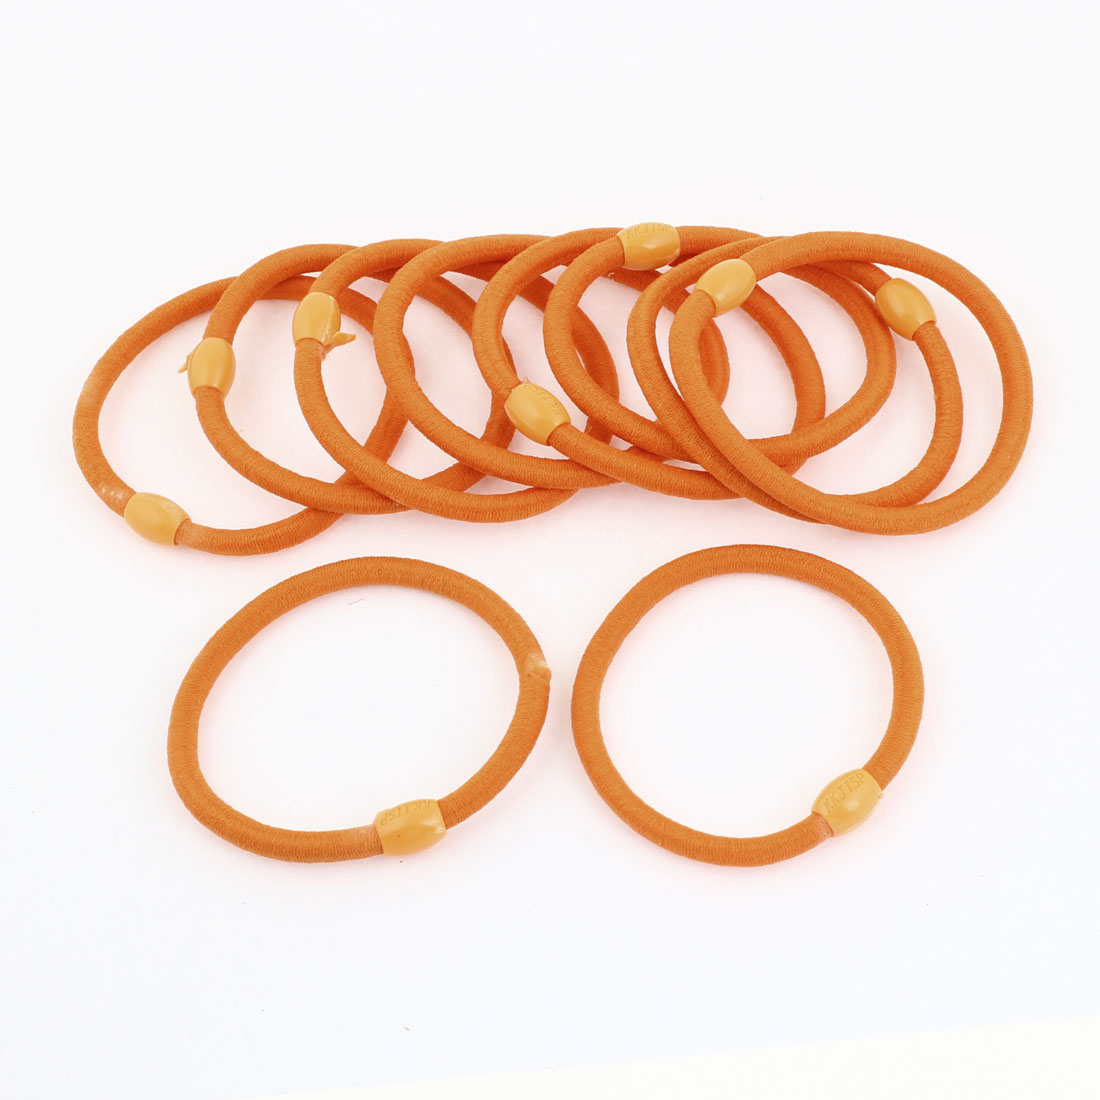 10 Pcs Orange Elastic Rubber Hair Bands Ponytail Holders for Ladies